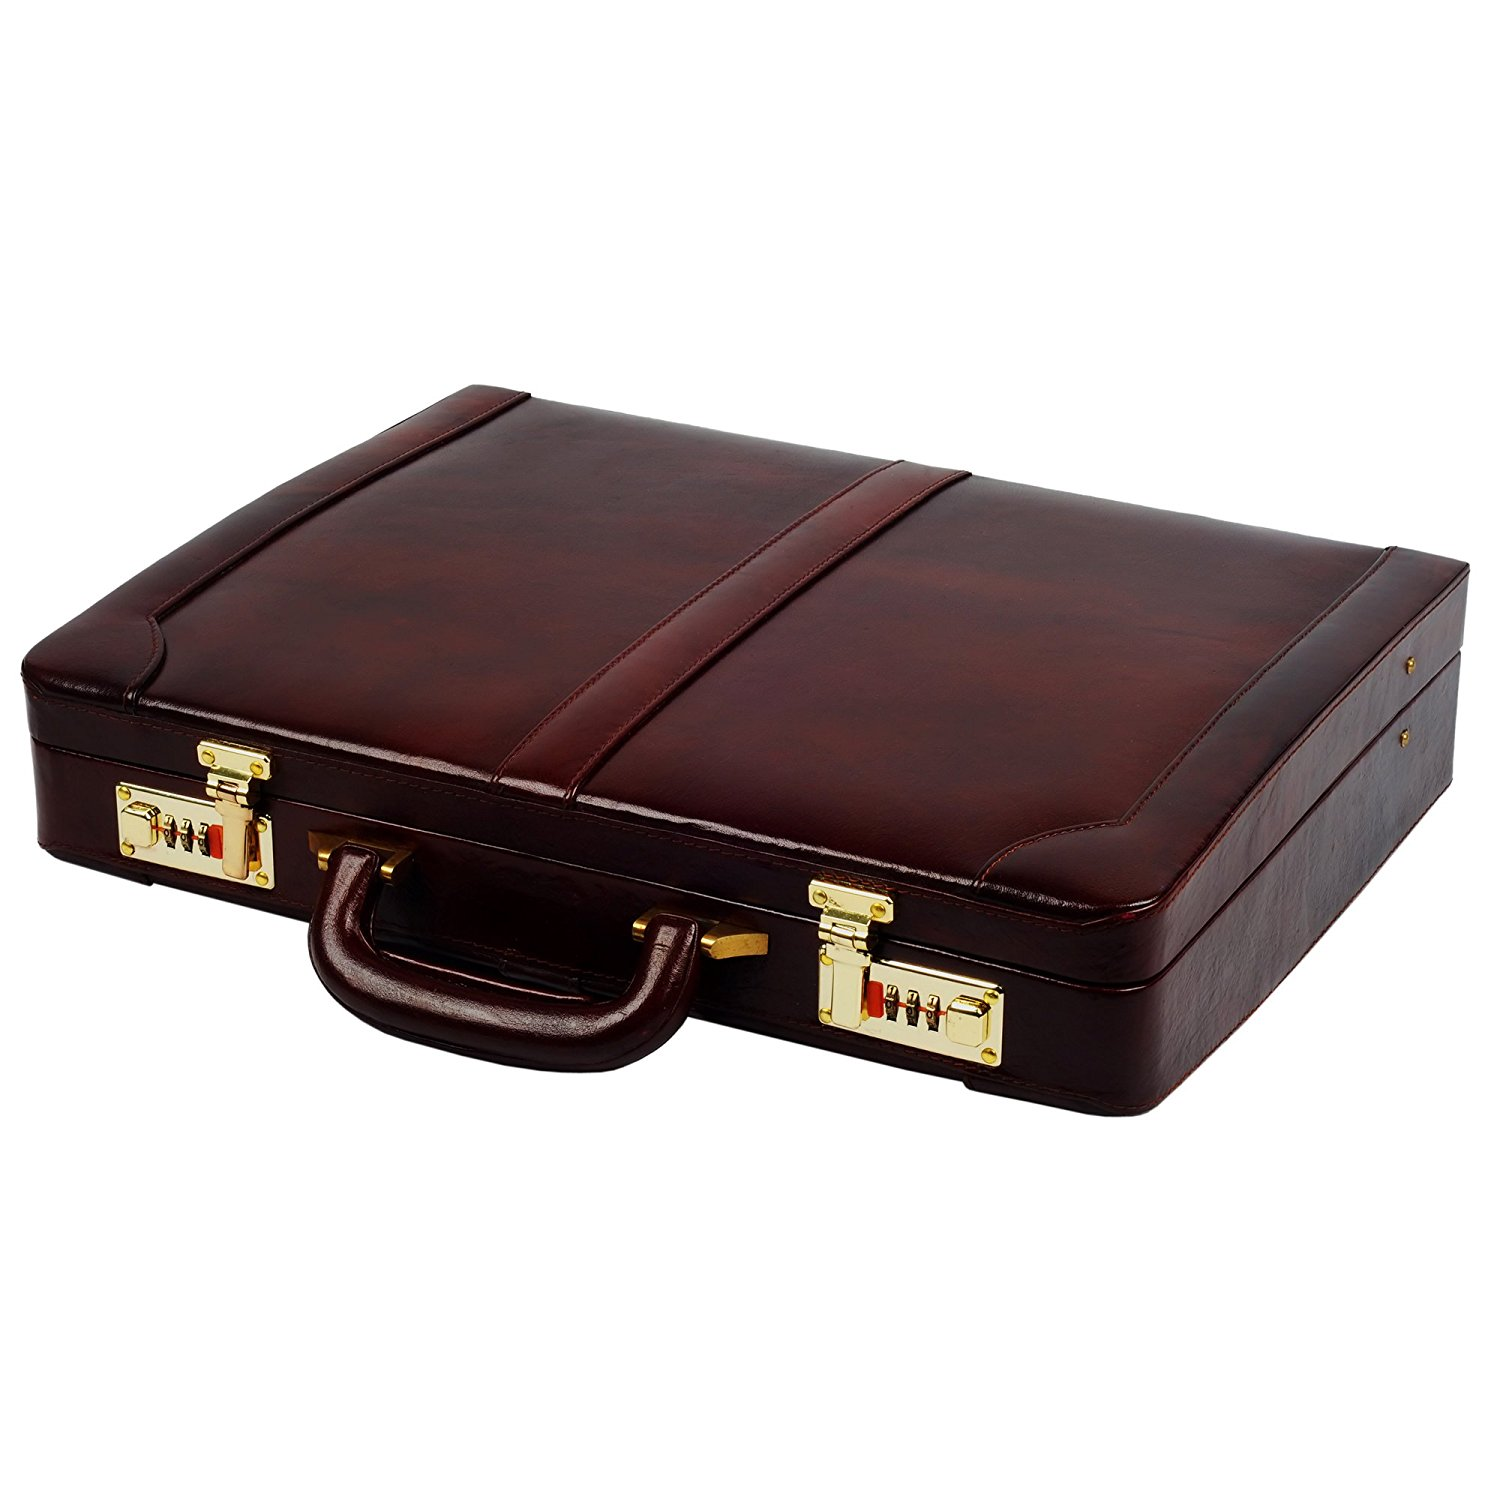 4757ca6a7c50 Get Quotations · Zint Men s Genuine Leather Hard Briefcase Attache -  Vintage Style